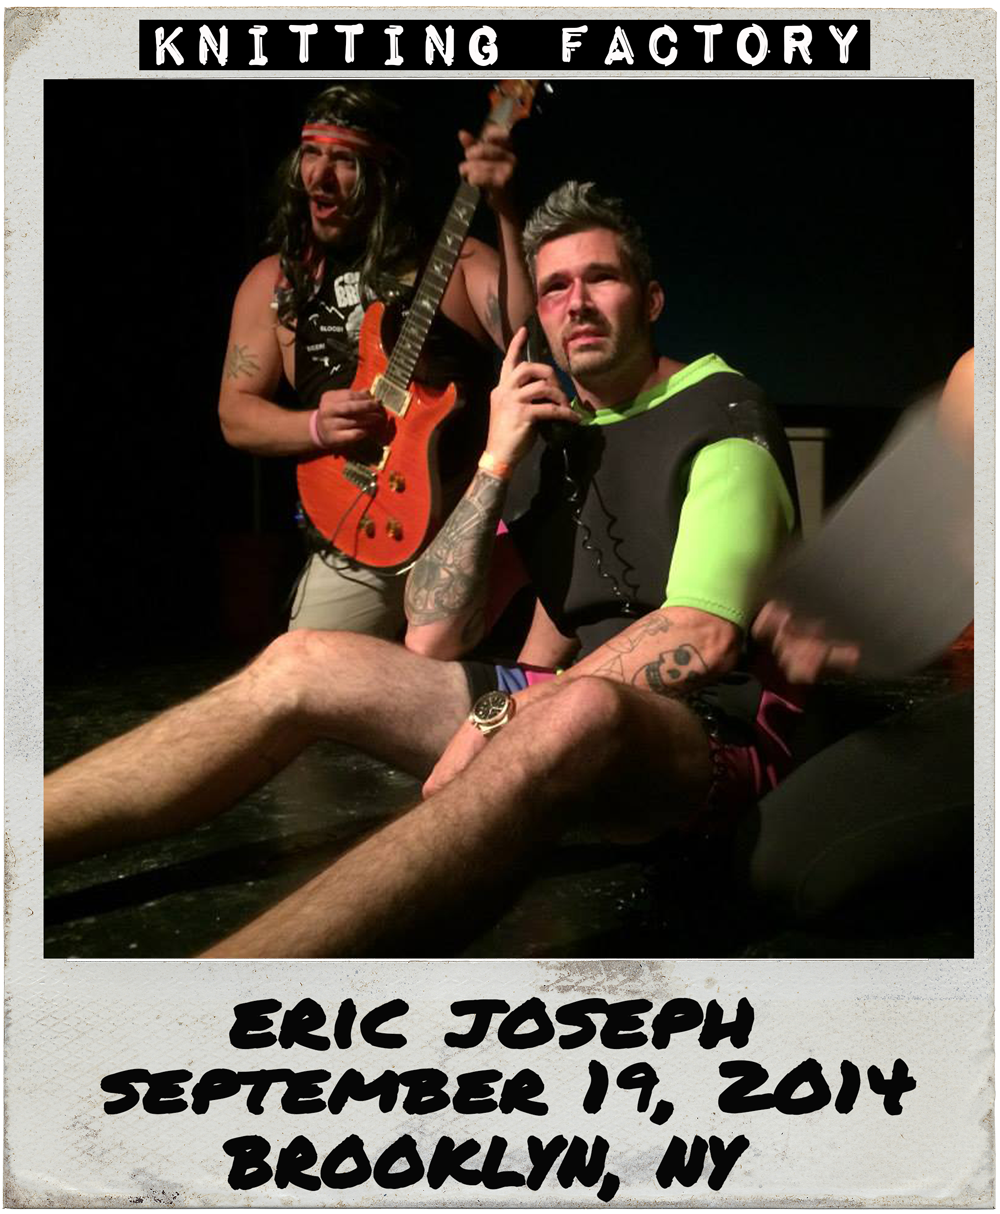 09_19_14_Eric-Joseph_Knitting-Factory.png